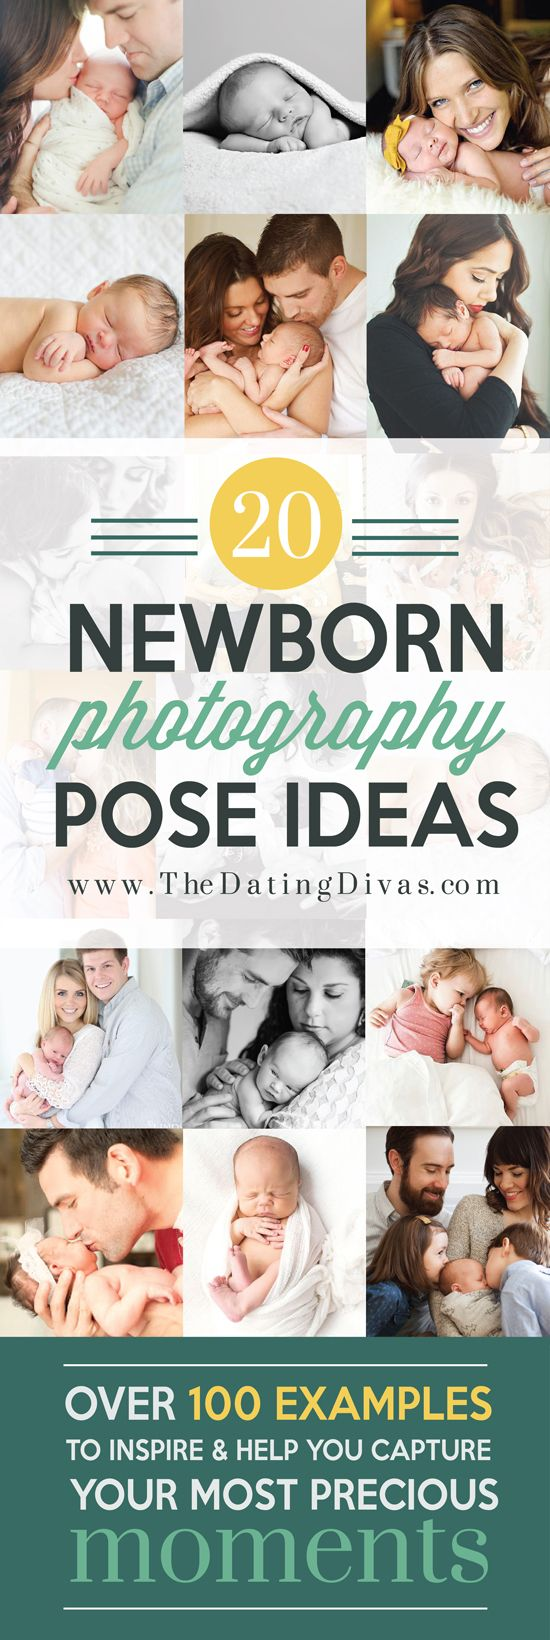 This is the ULTIMATE newborn posing guide! 20 precious pose ideas for newborns! This will be so helpful! www.TheDatingDivas.com